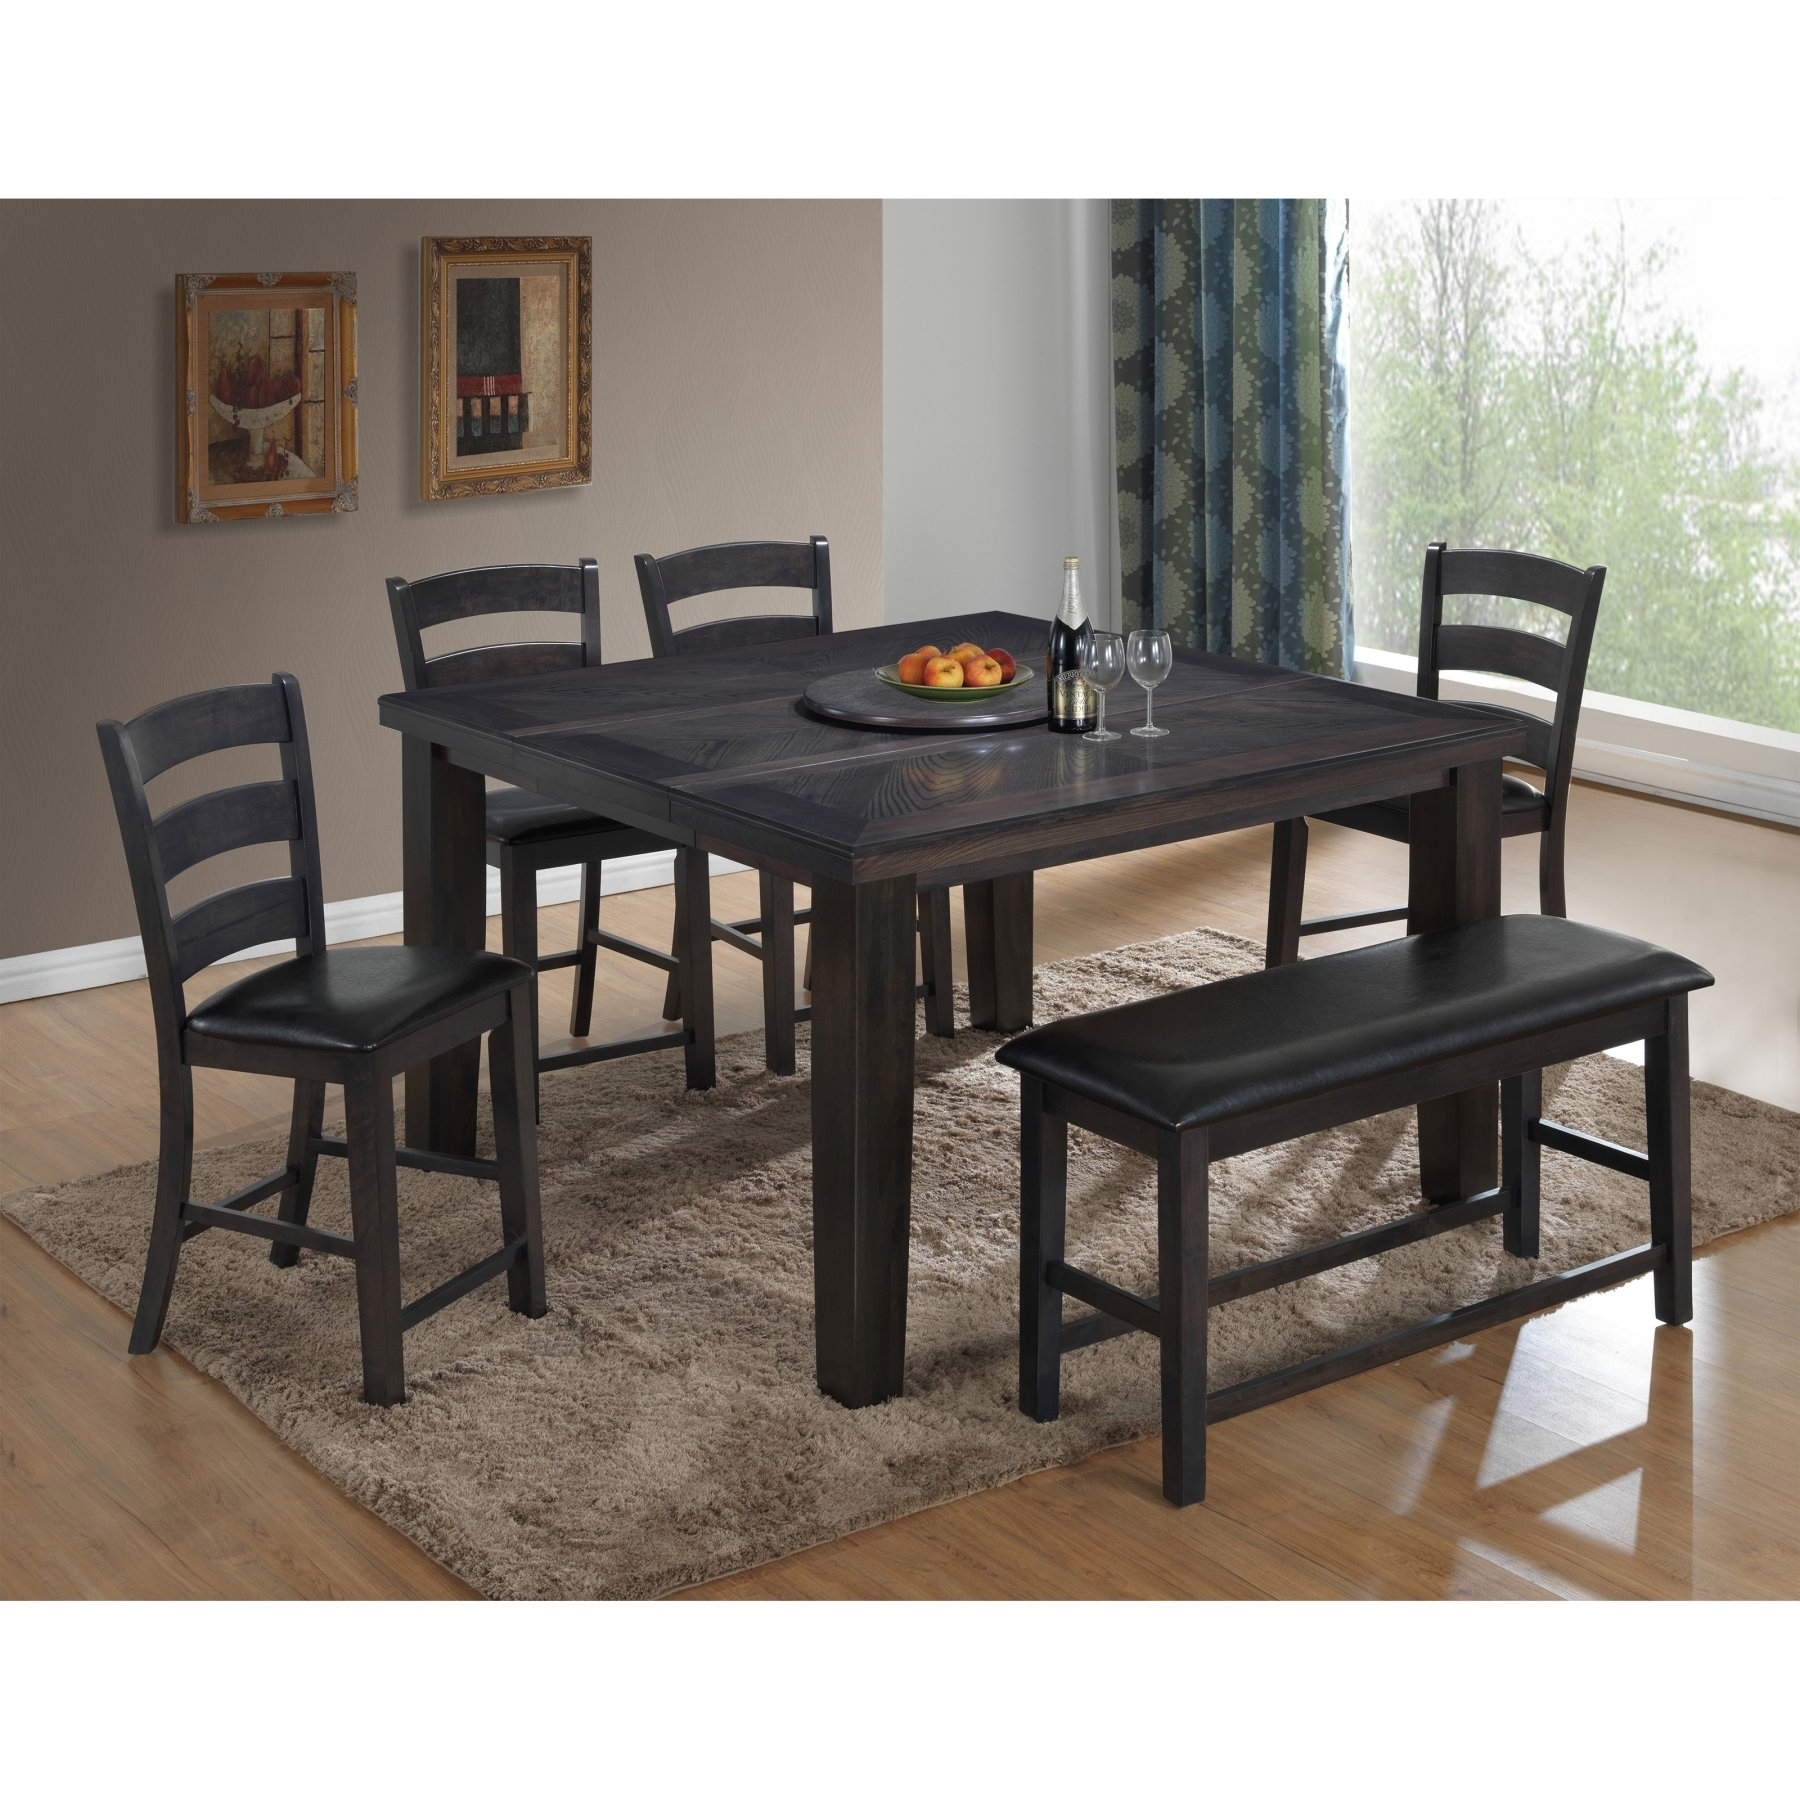 Best Master Furniture Carol Rectangular 6 Piece Counter Height Within Well Liked Craftsman 7 Piece Rectangle Extension Dining Sets With Side Chairs (View 23 of 25)